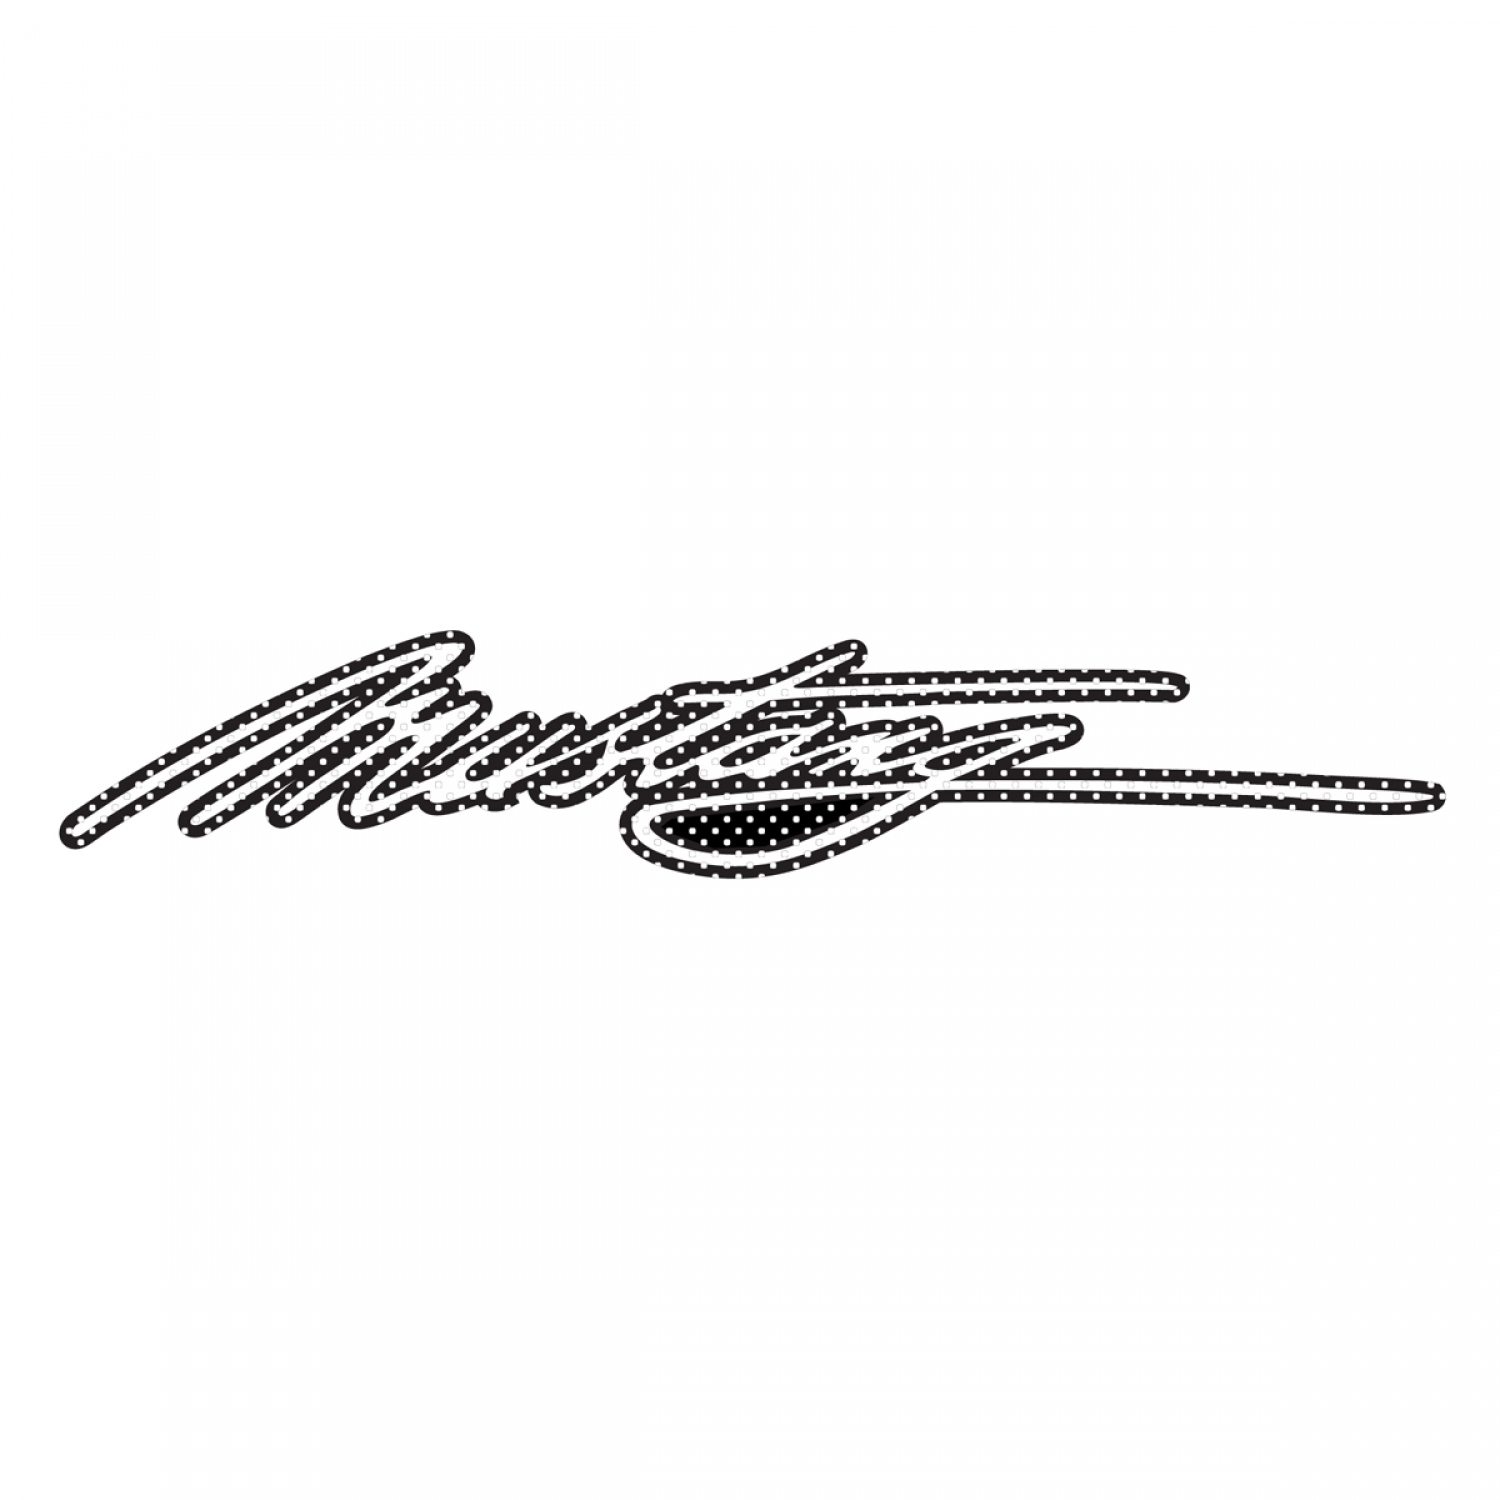 "Ford Mustang Script 12"" 3M Perforated Unobstructed View Window Graphic Decorative Decal"